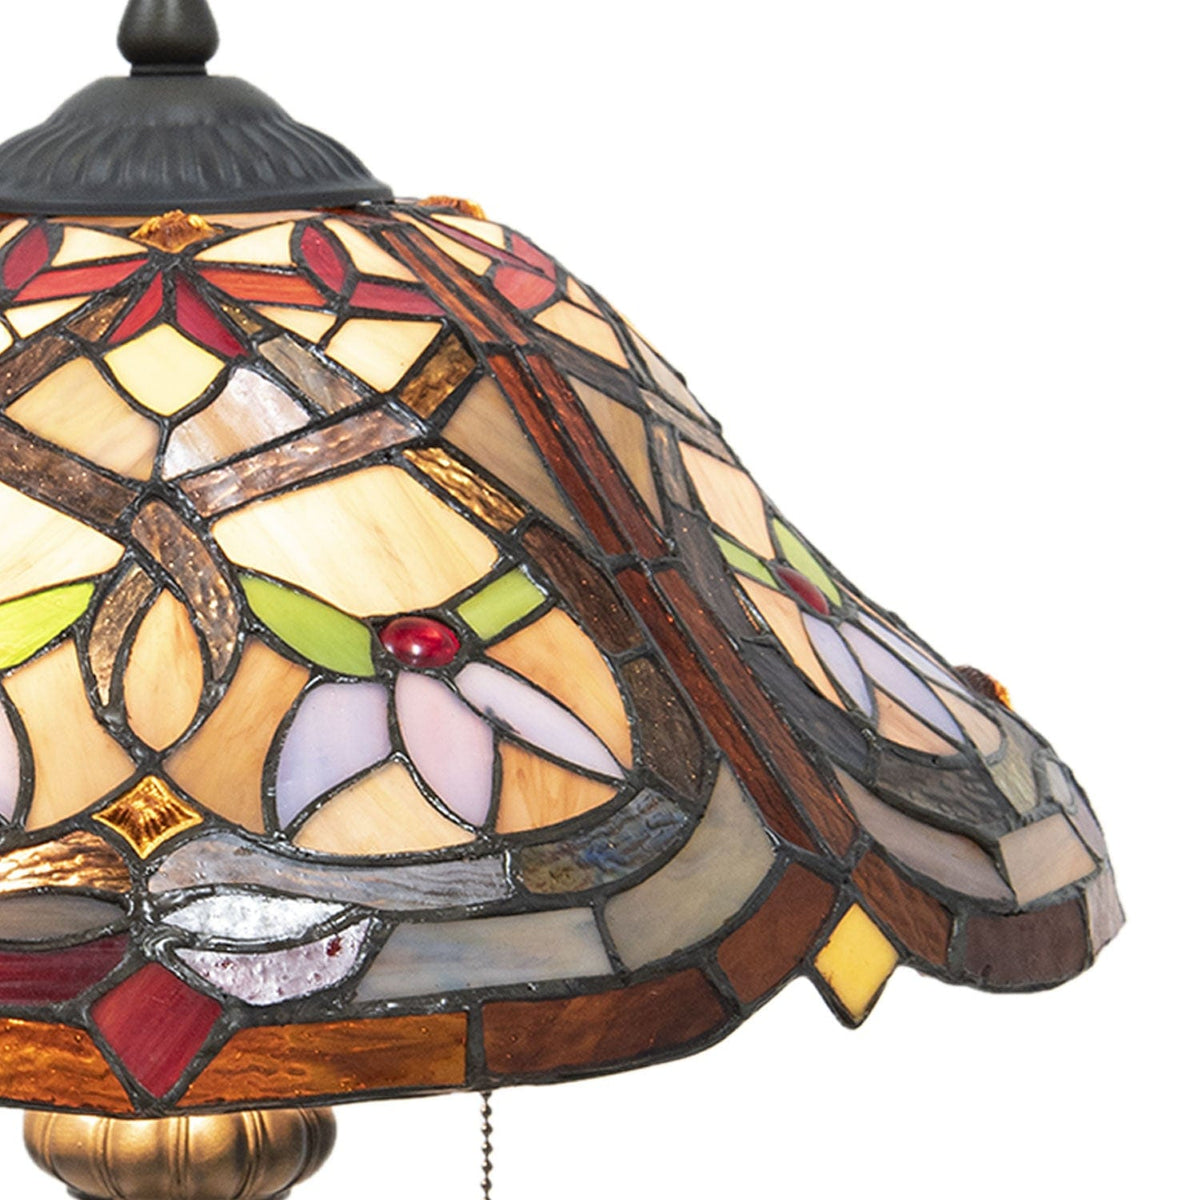 Whitwick Tiffany Table Lamp 5LL-7808